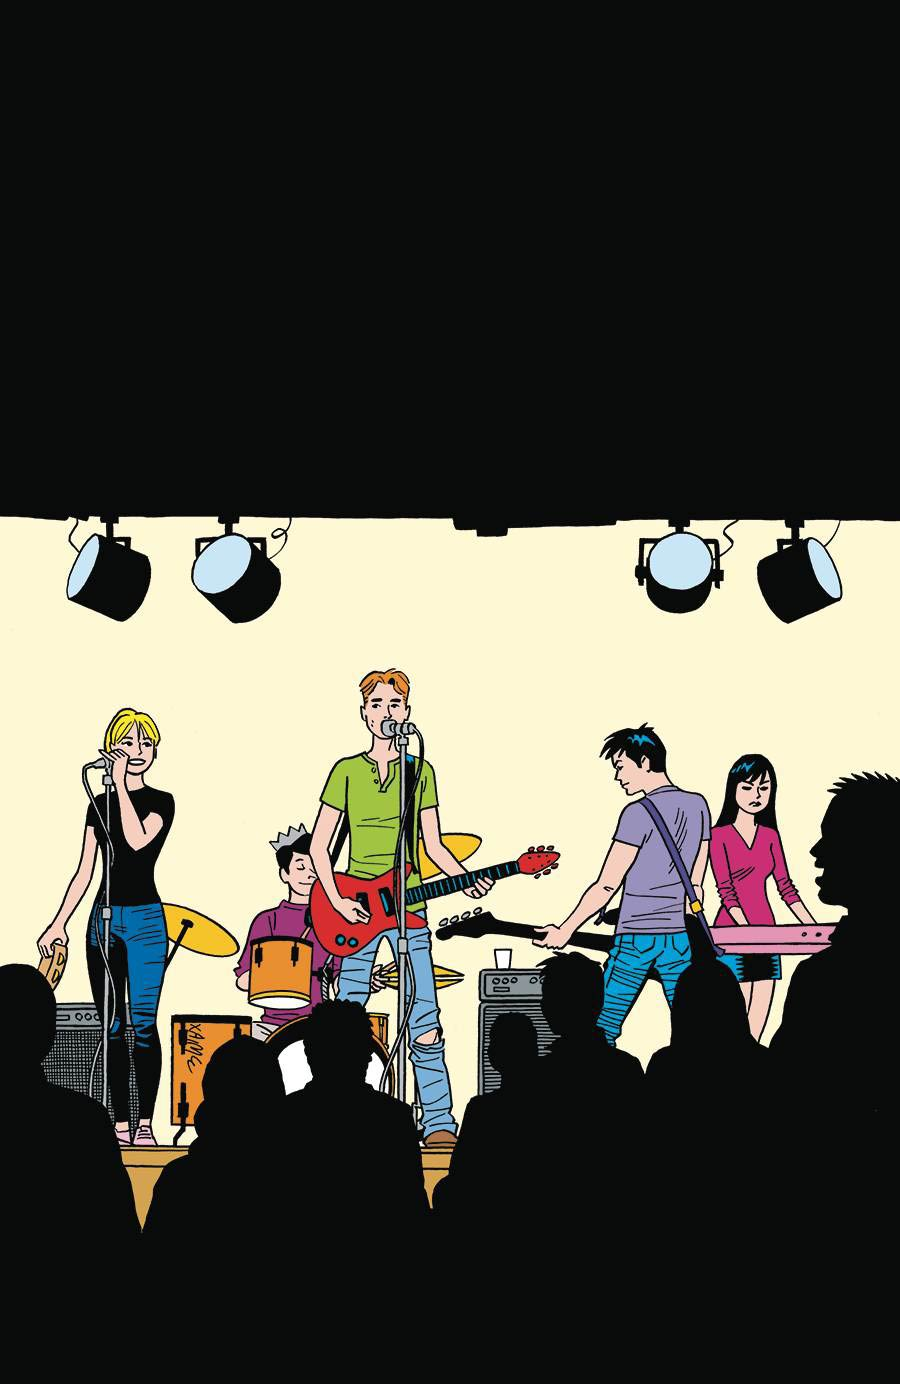 Archies One Shot Cover A Regular Jaime Hernandez Cover